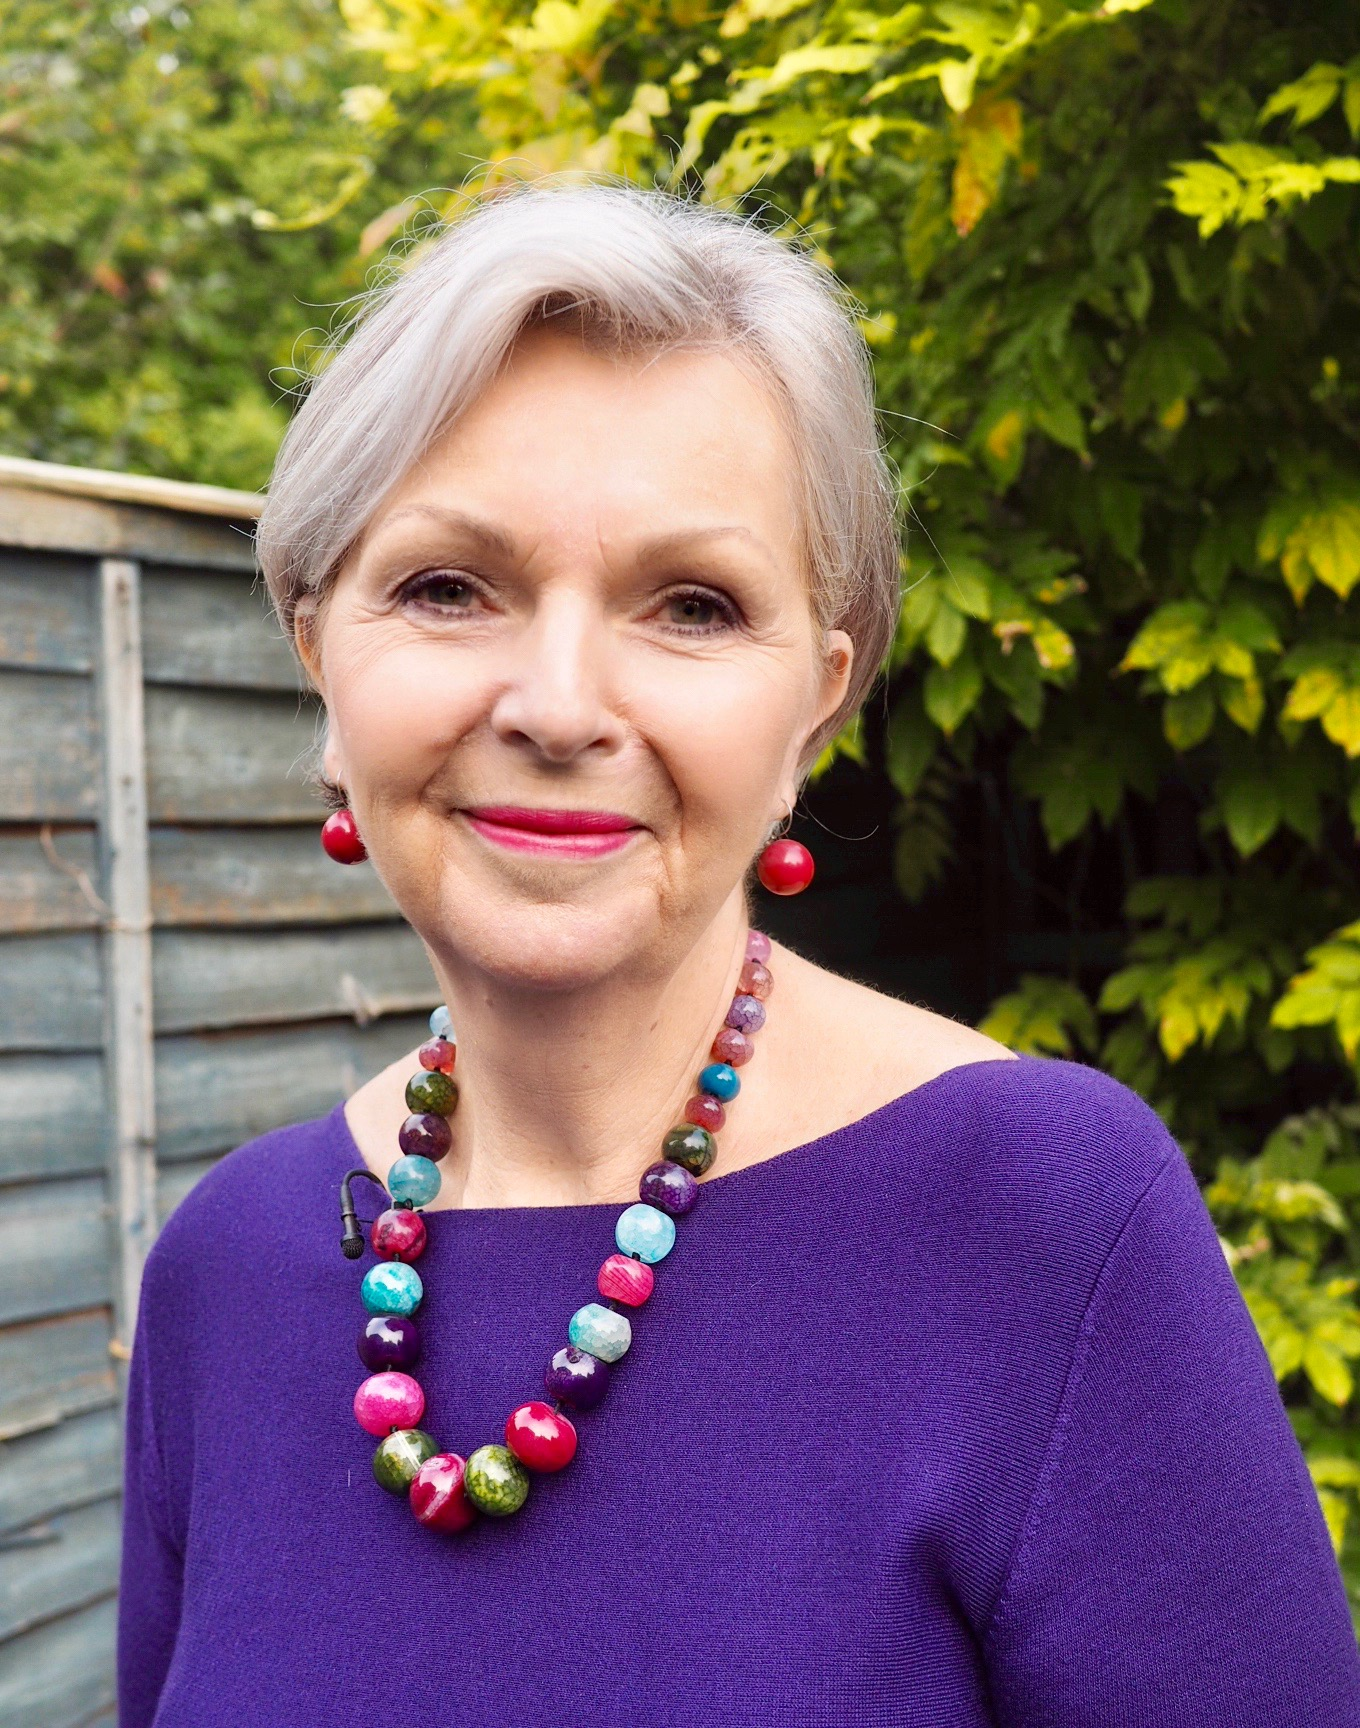 Tricia cusden, the founder of lff, look fabulous forever. makeup for the over 50s.